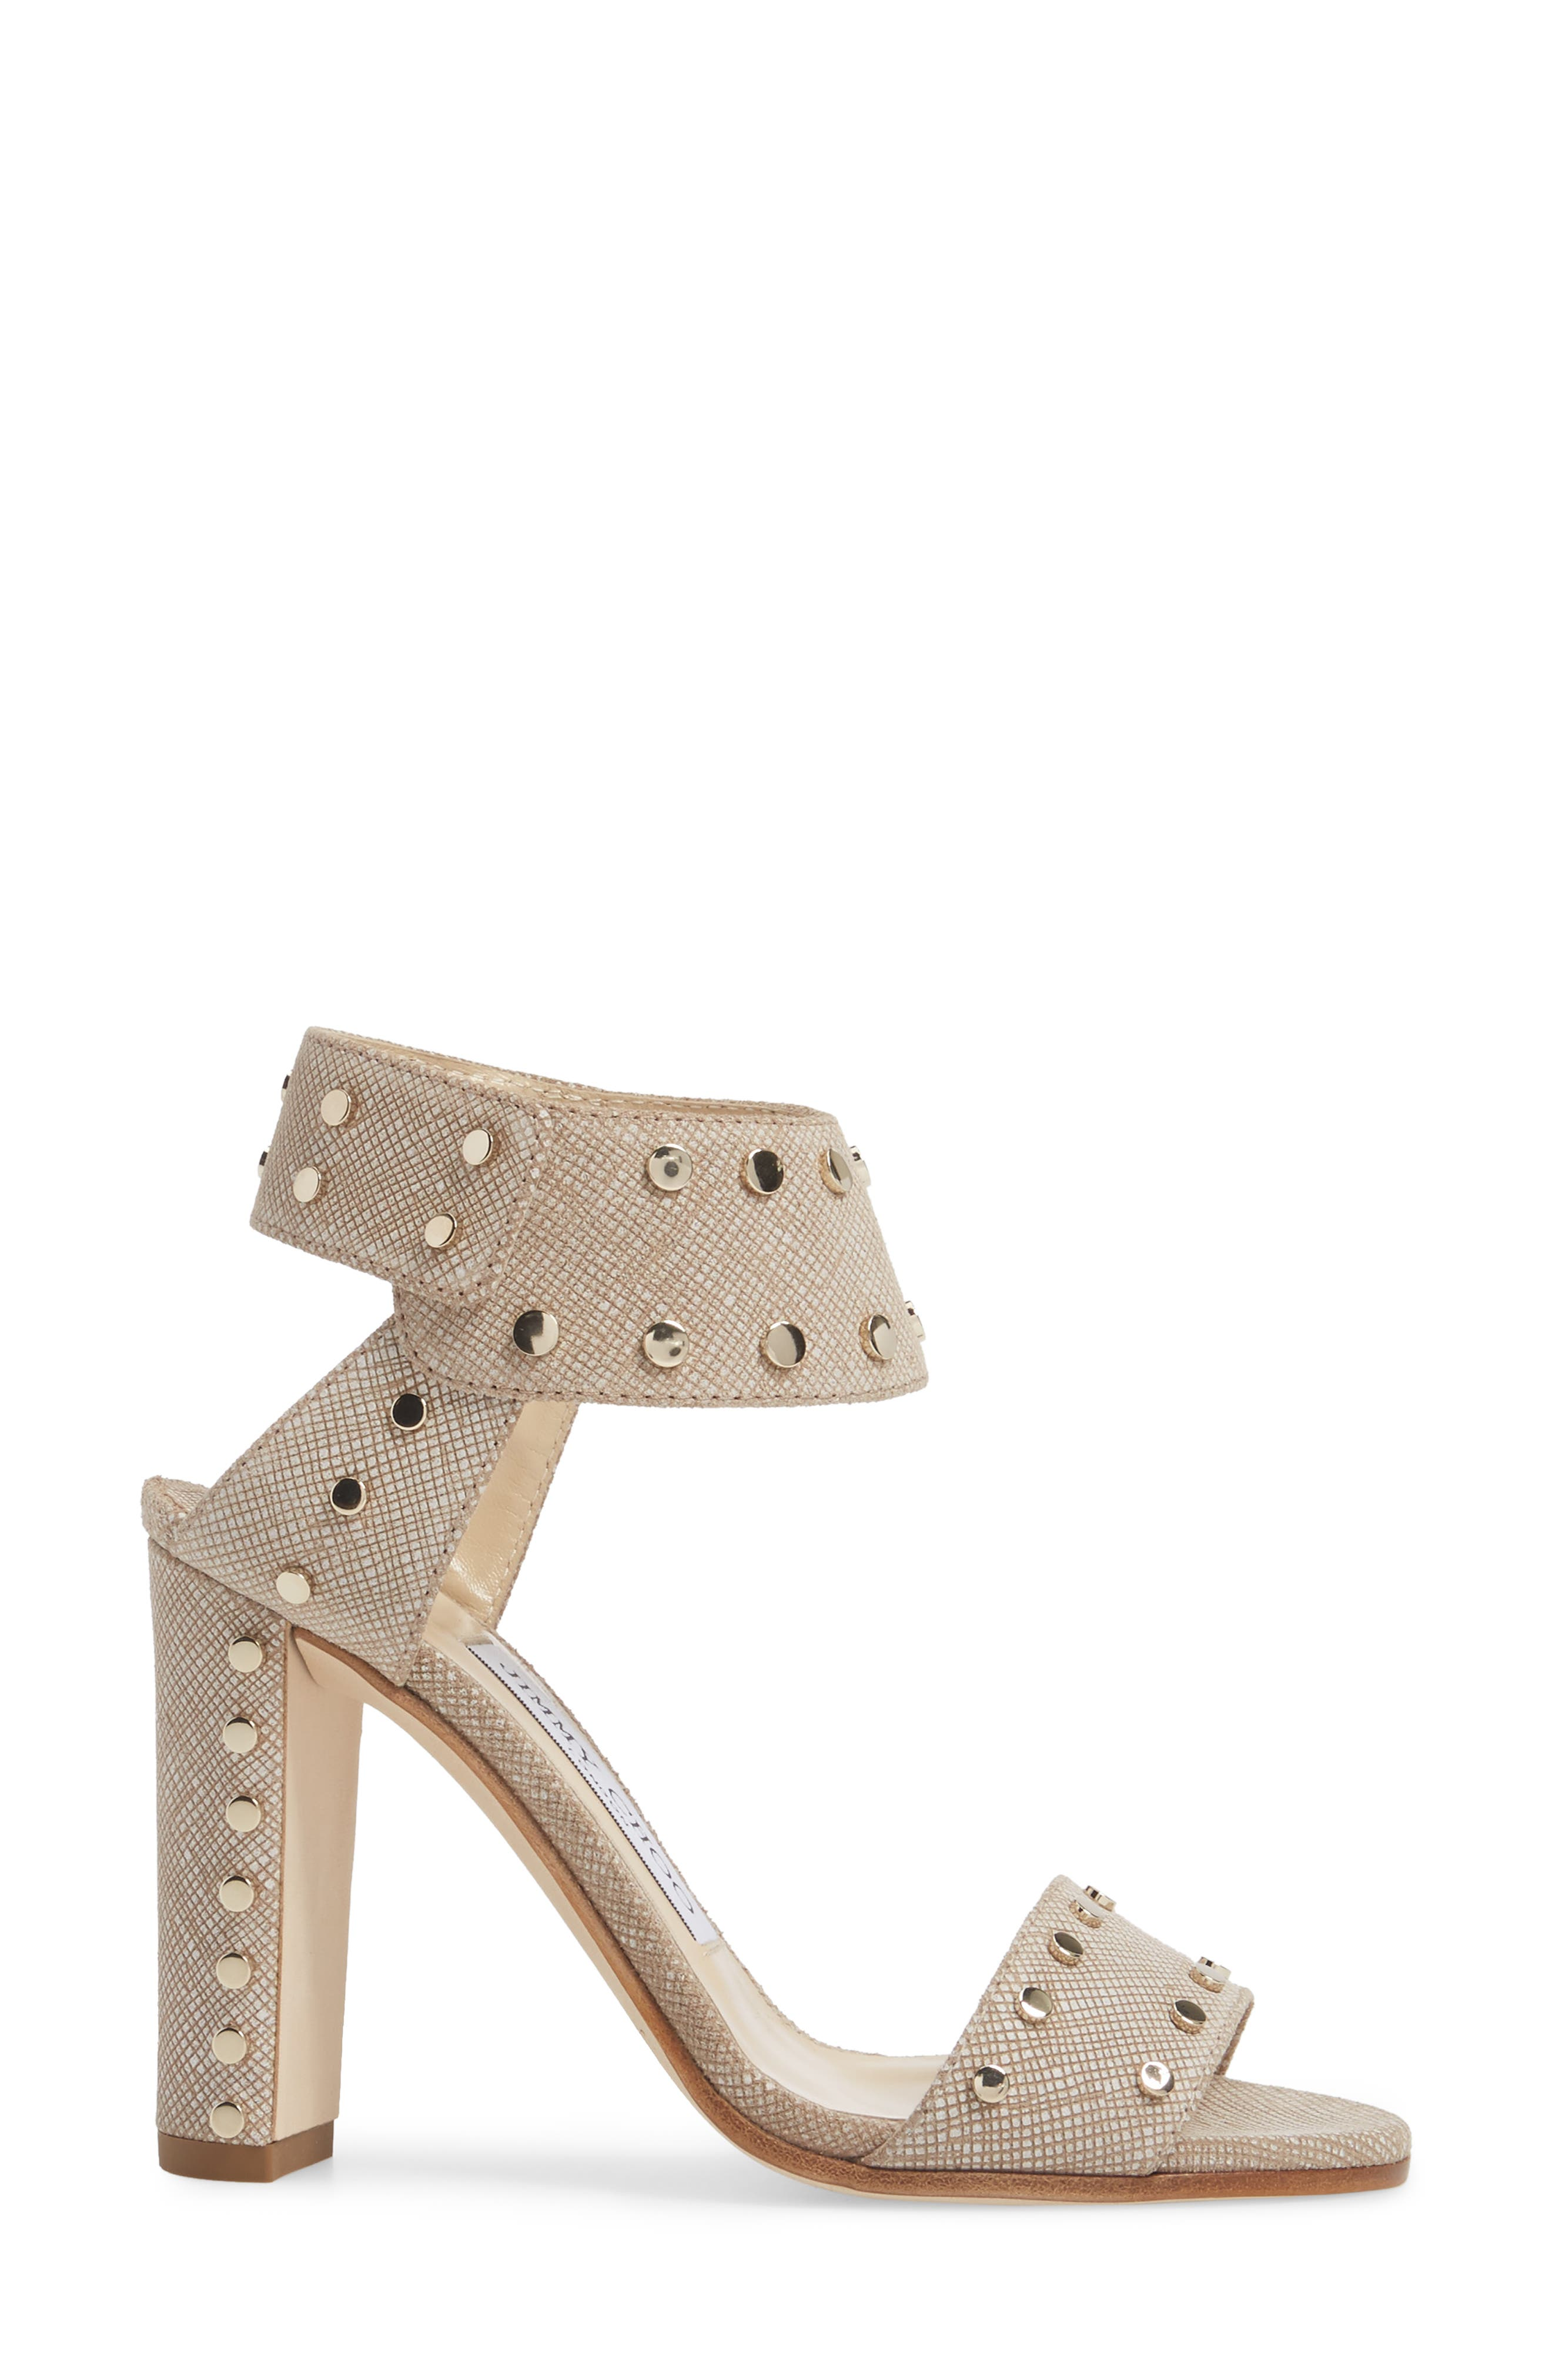 Veto Studded Ankle Cuff Sandal,                             Alternate thumbnail 3, color,                             Chai/ Gold